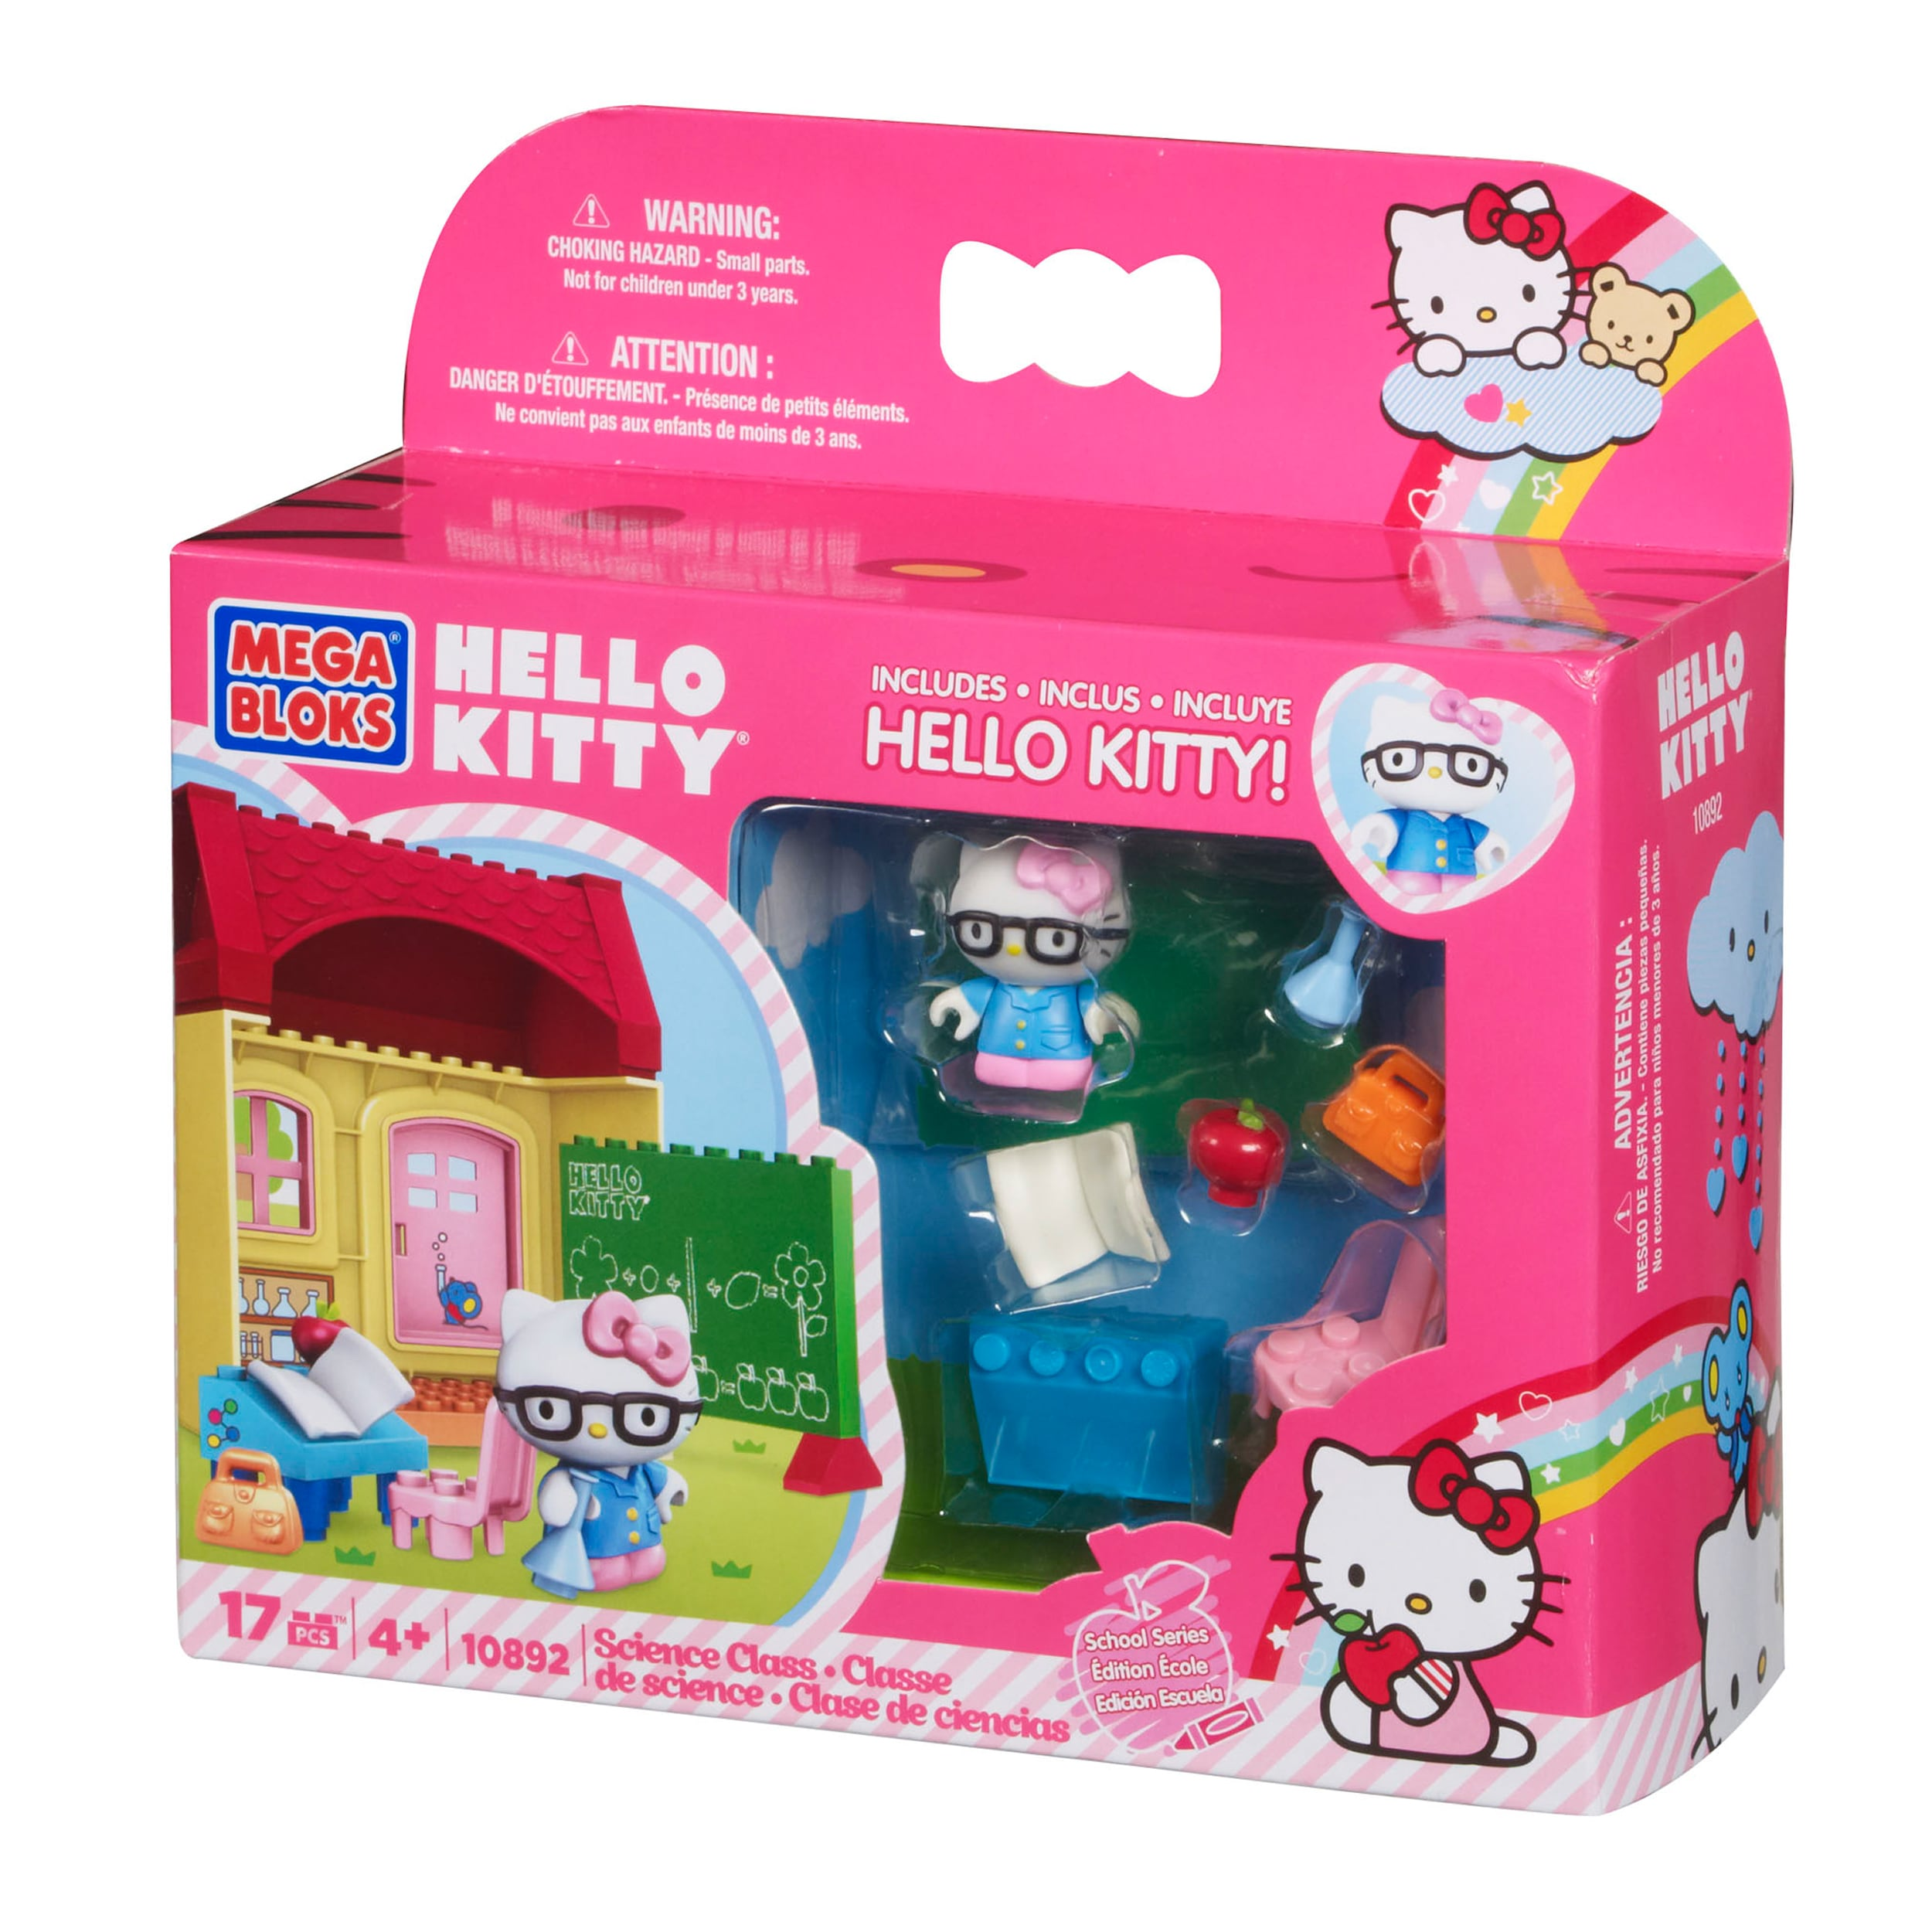 Mega Bloks Hello Kitty Science Class Playset